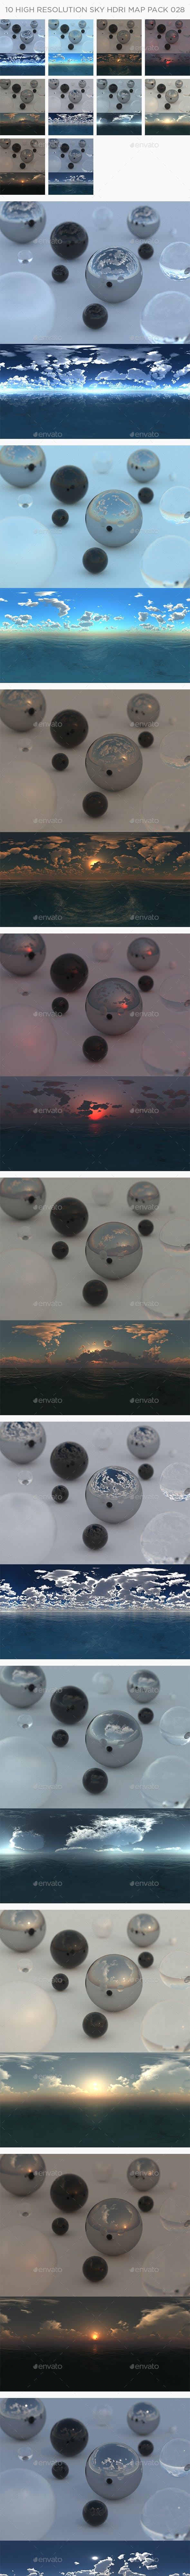 10 High Resolution Sky HDRi Maps Pack 028 - 3DOcean Item for Sale